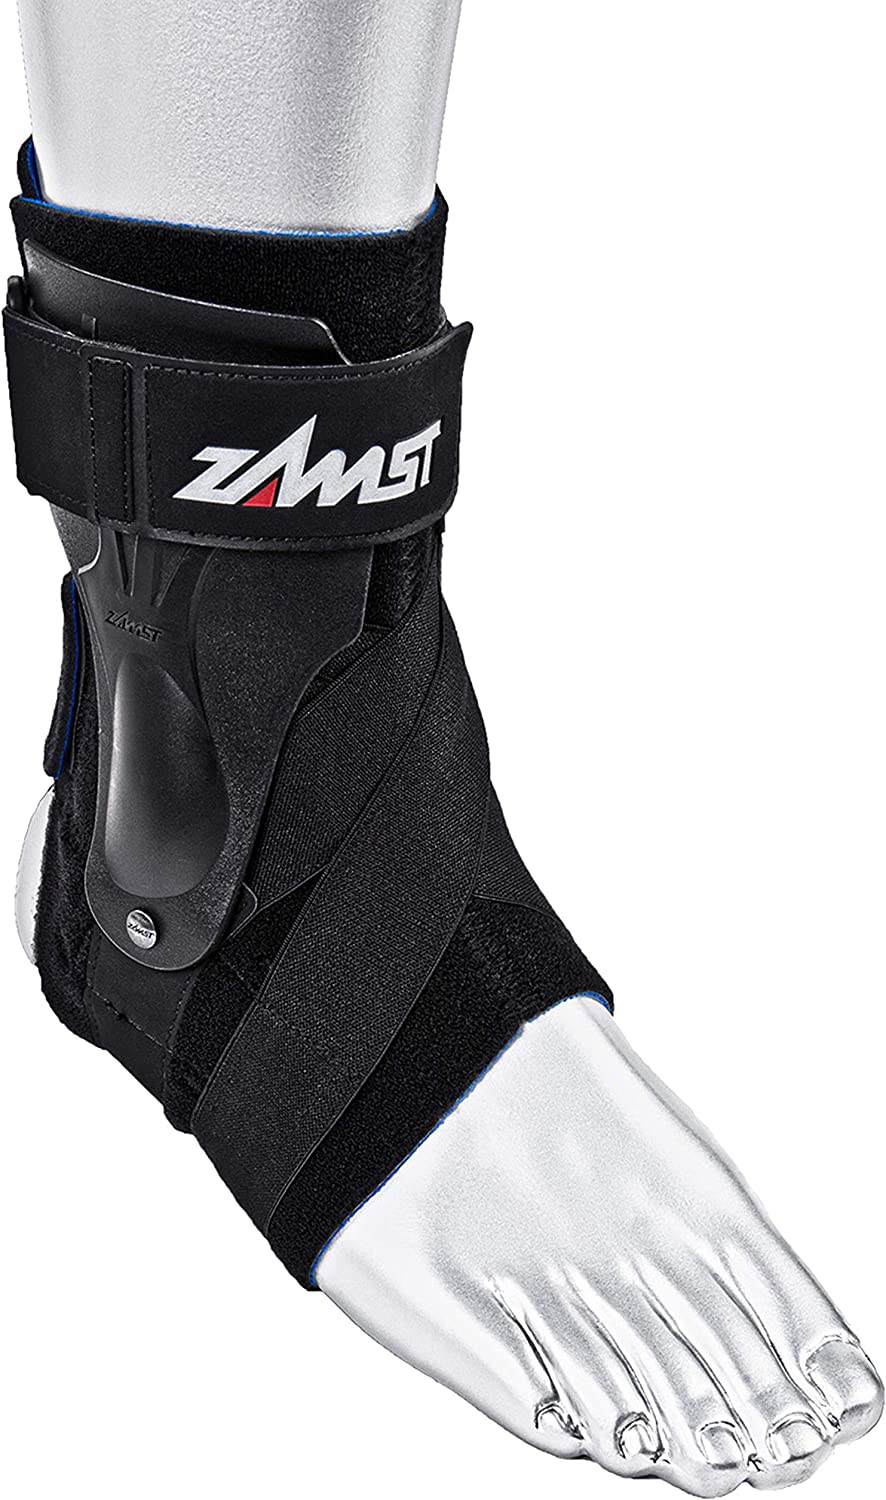 #5 Zamst A2-DX Strong Support Ankle Brace